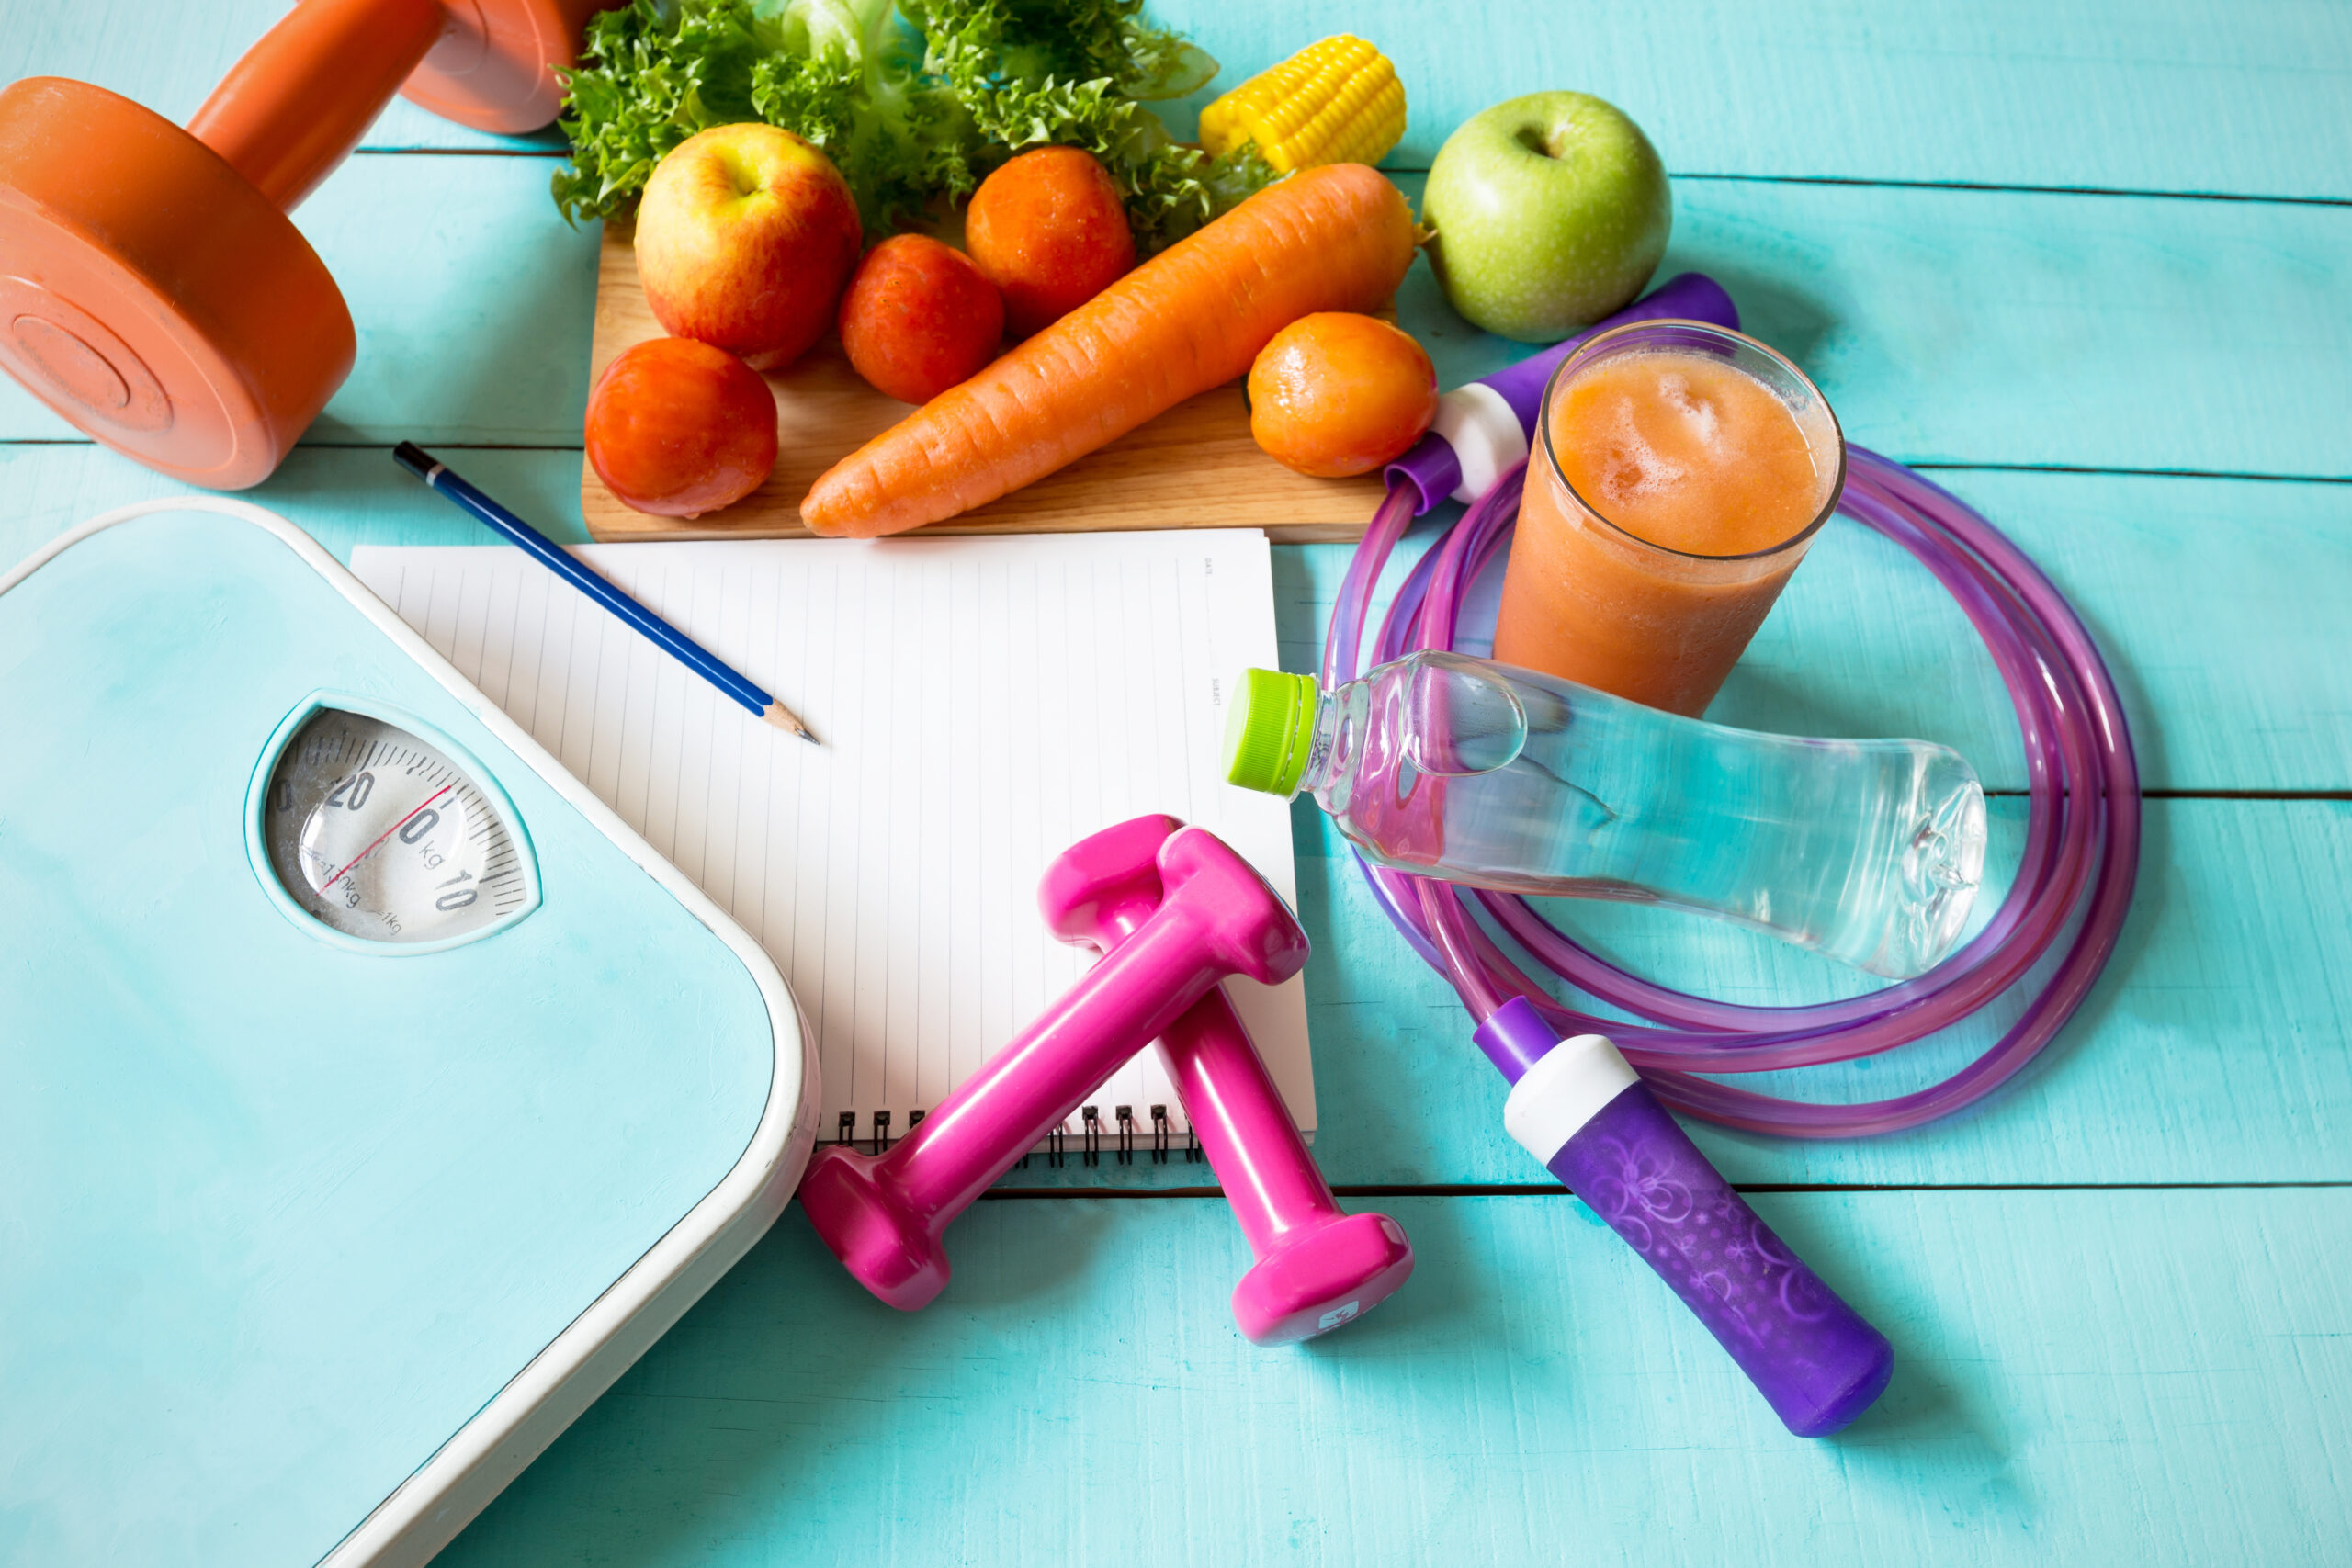 What To Know About Losing Weight The Healthy Way